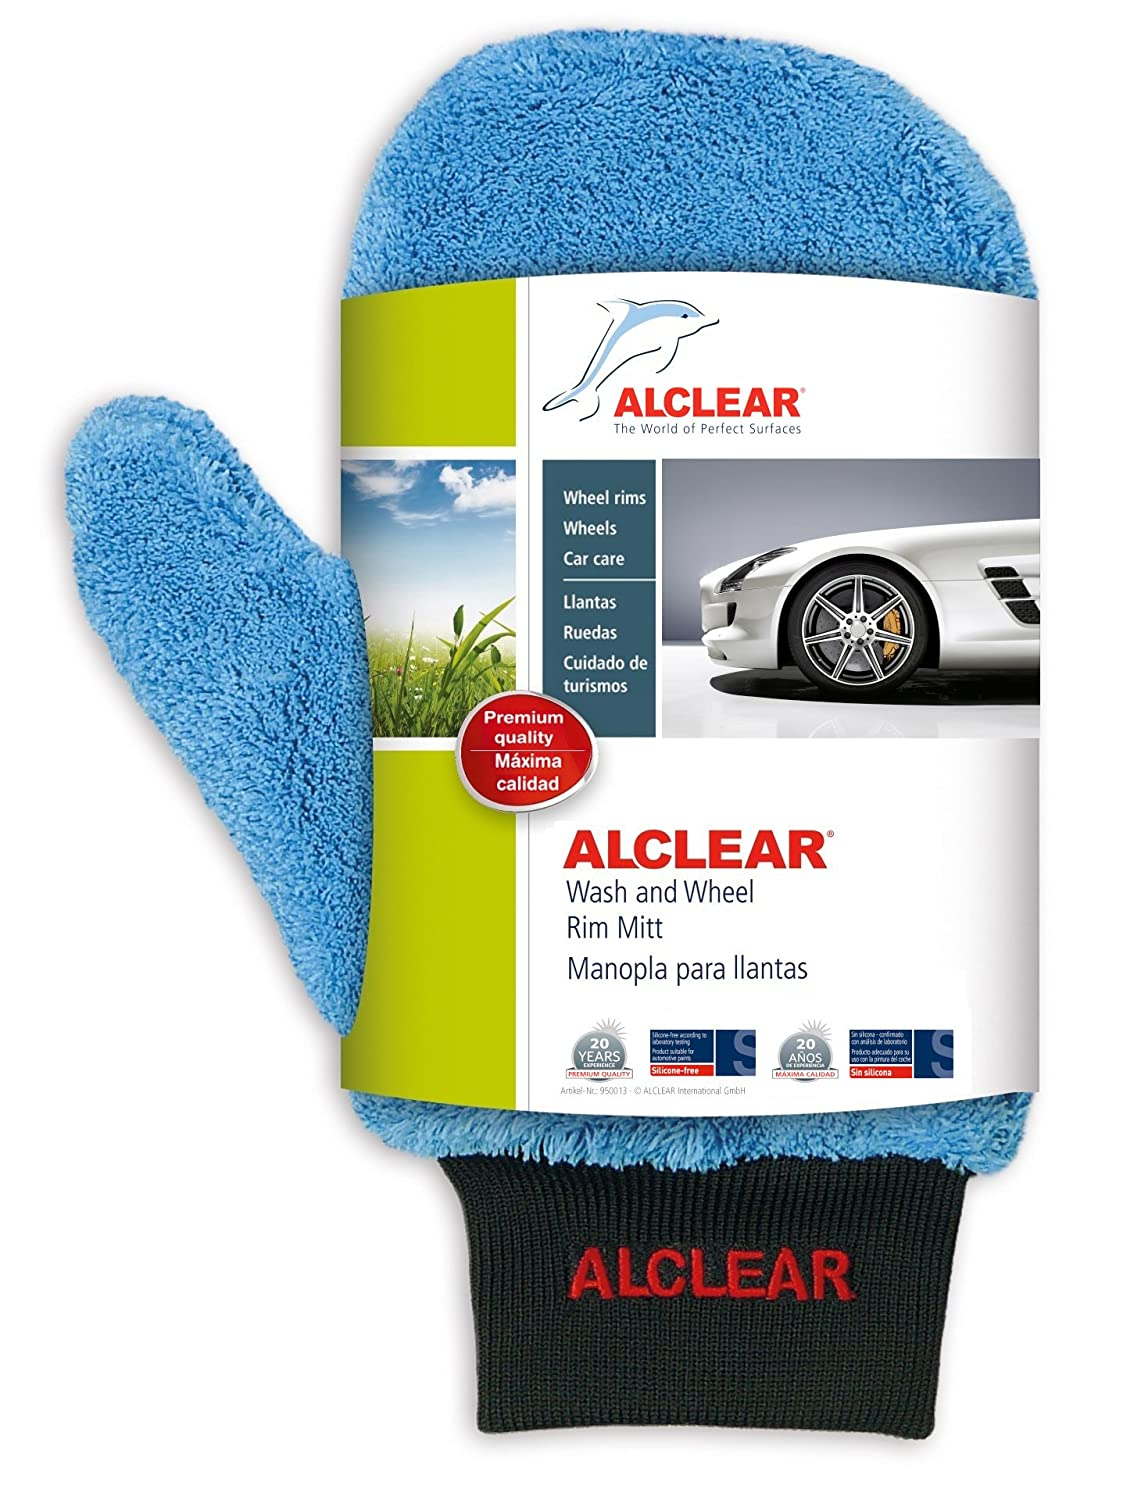 Amazon.com: ALCLEAR 950013 Ultra-Microfiber professional scratch free Wheel Rim Mitt, blue with black cuff. Size approx. 10.24 x 4.72 in.: Automotive